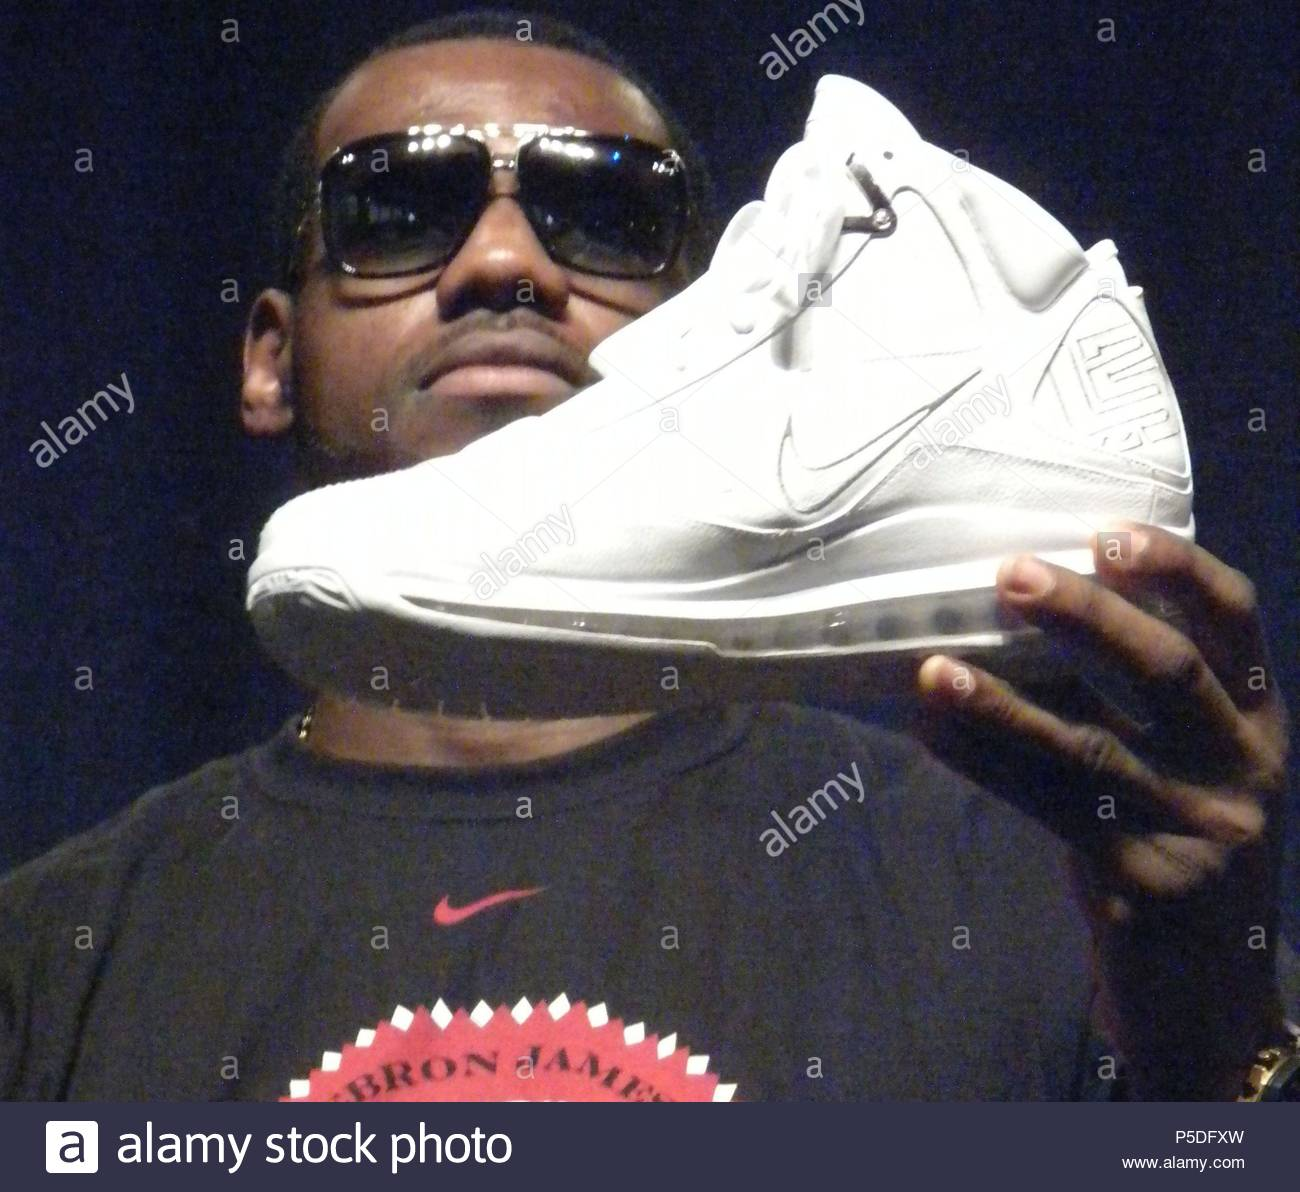 c37594814f72 ... new arrivals lebron james. lebron james signs lifetime endorsement deal  with nike stock image file